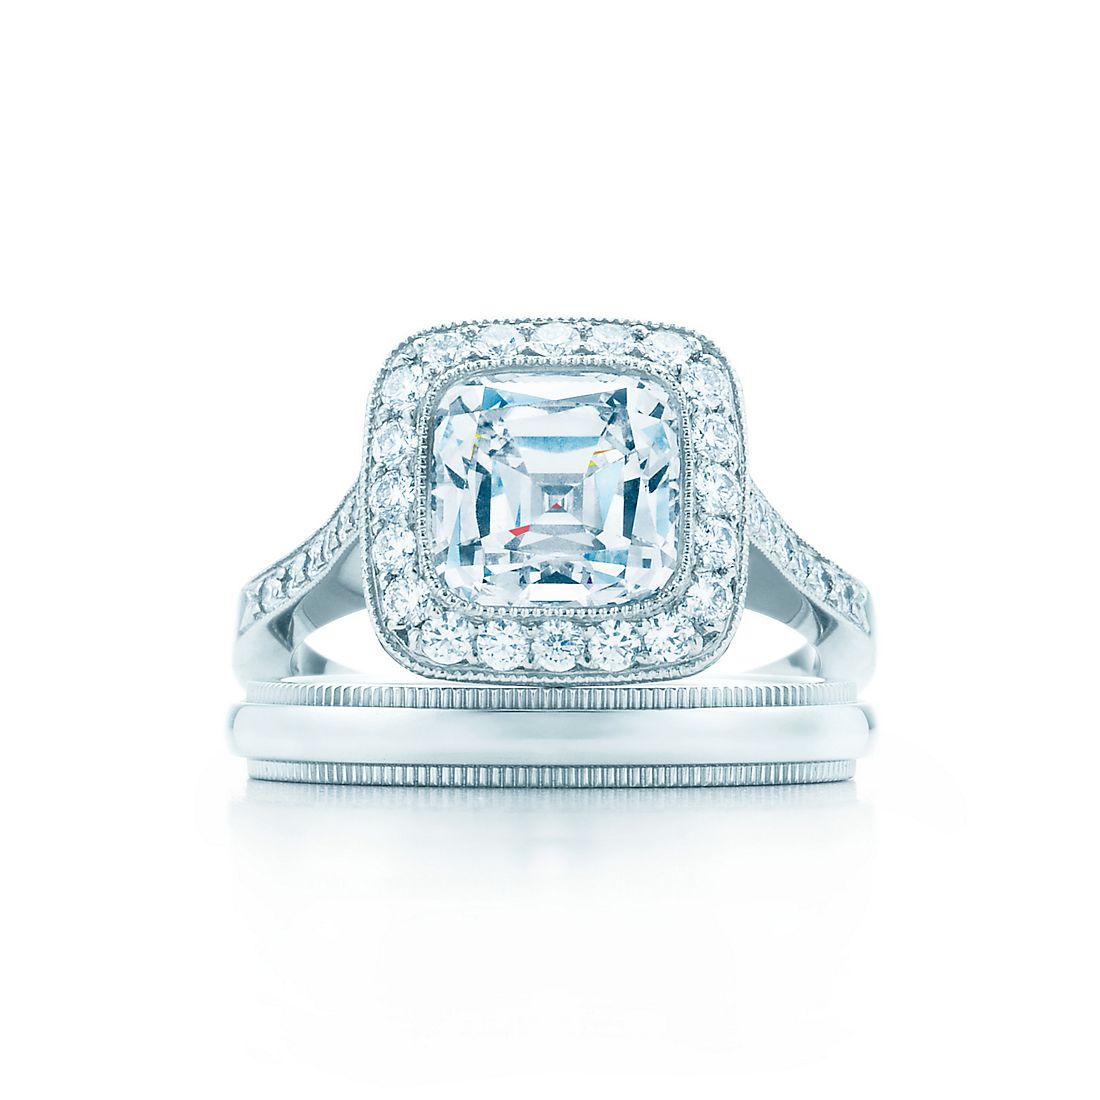 diamond rings ring dollar james price carat engagement comparison get allen the to how perfect